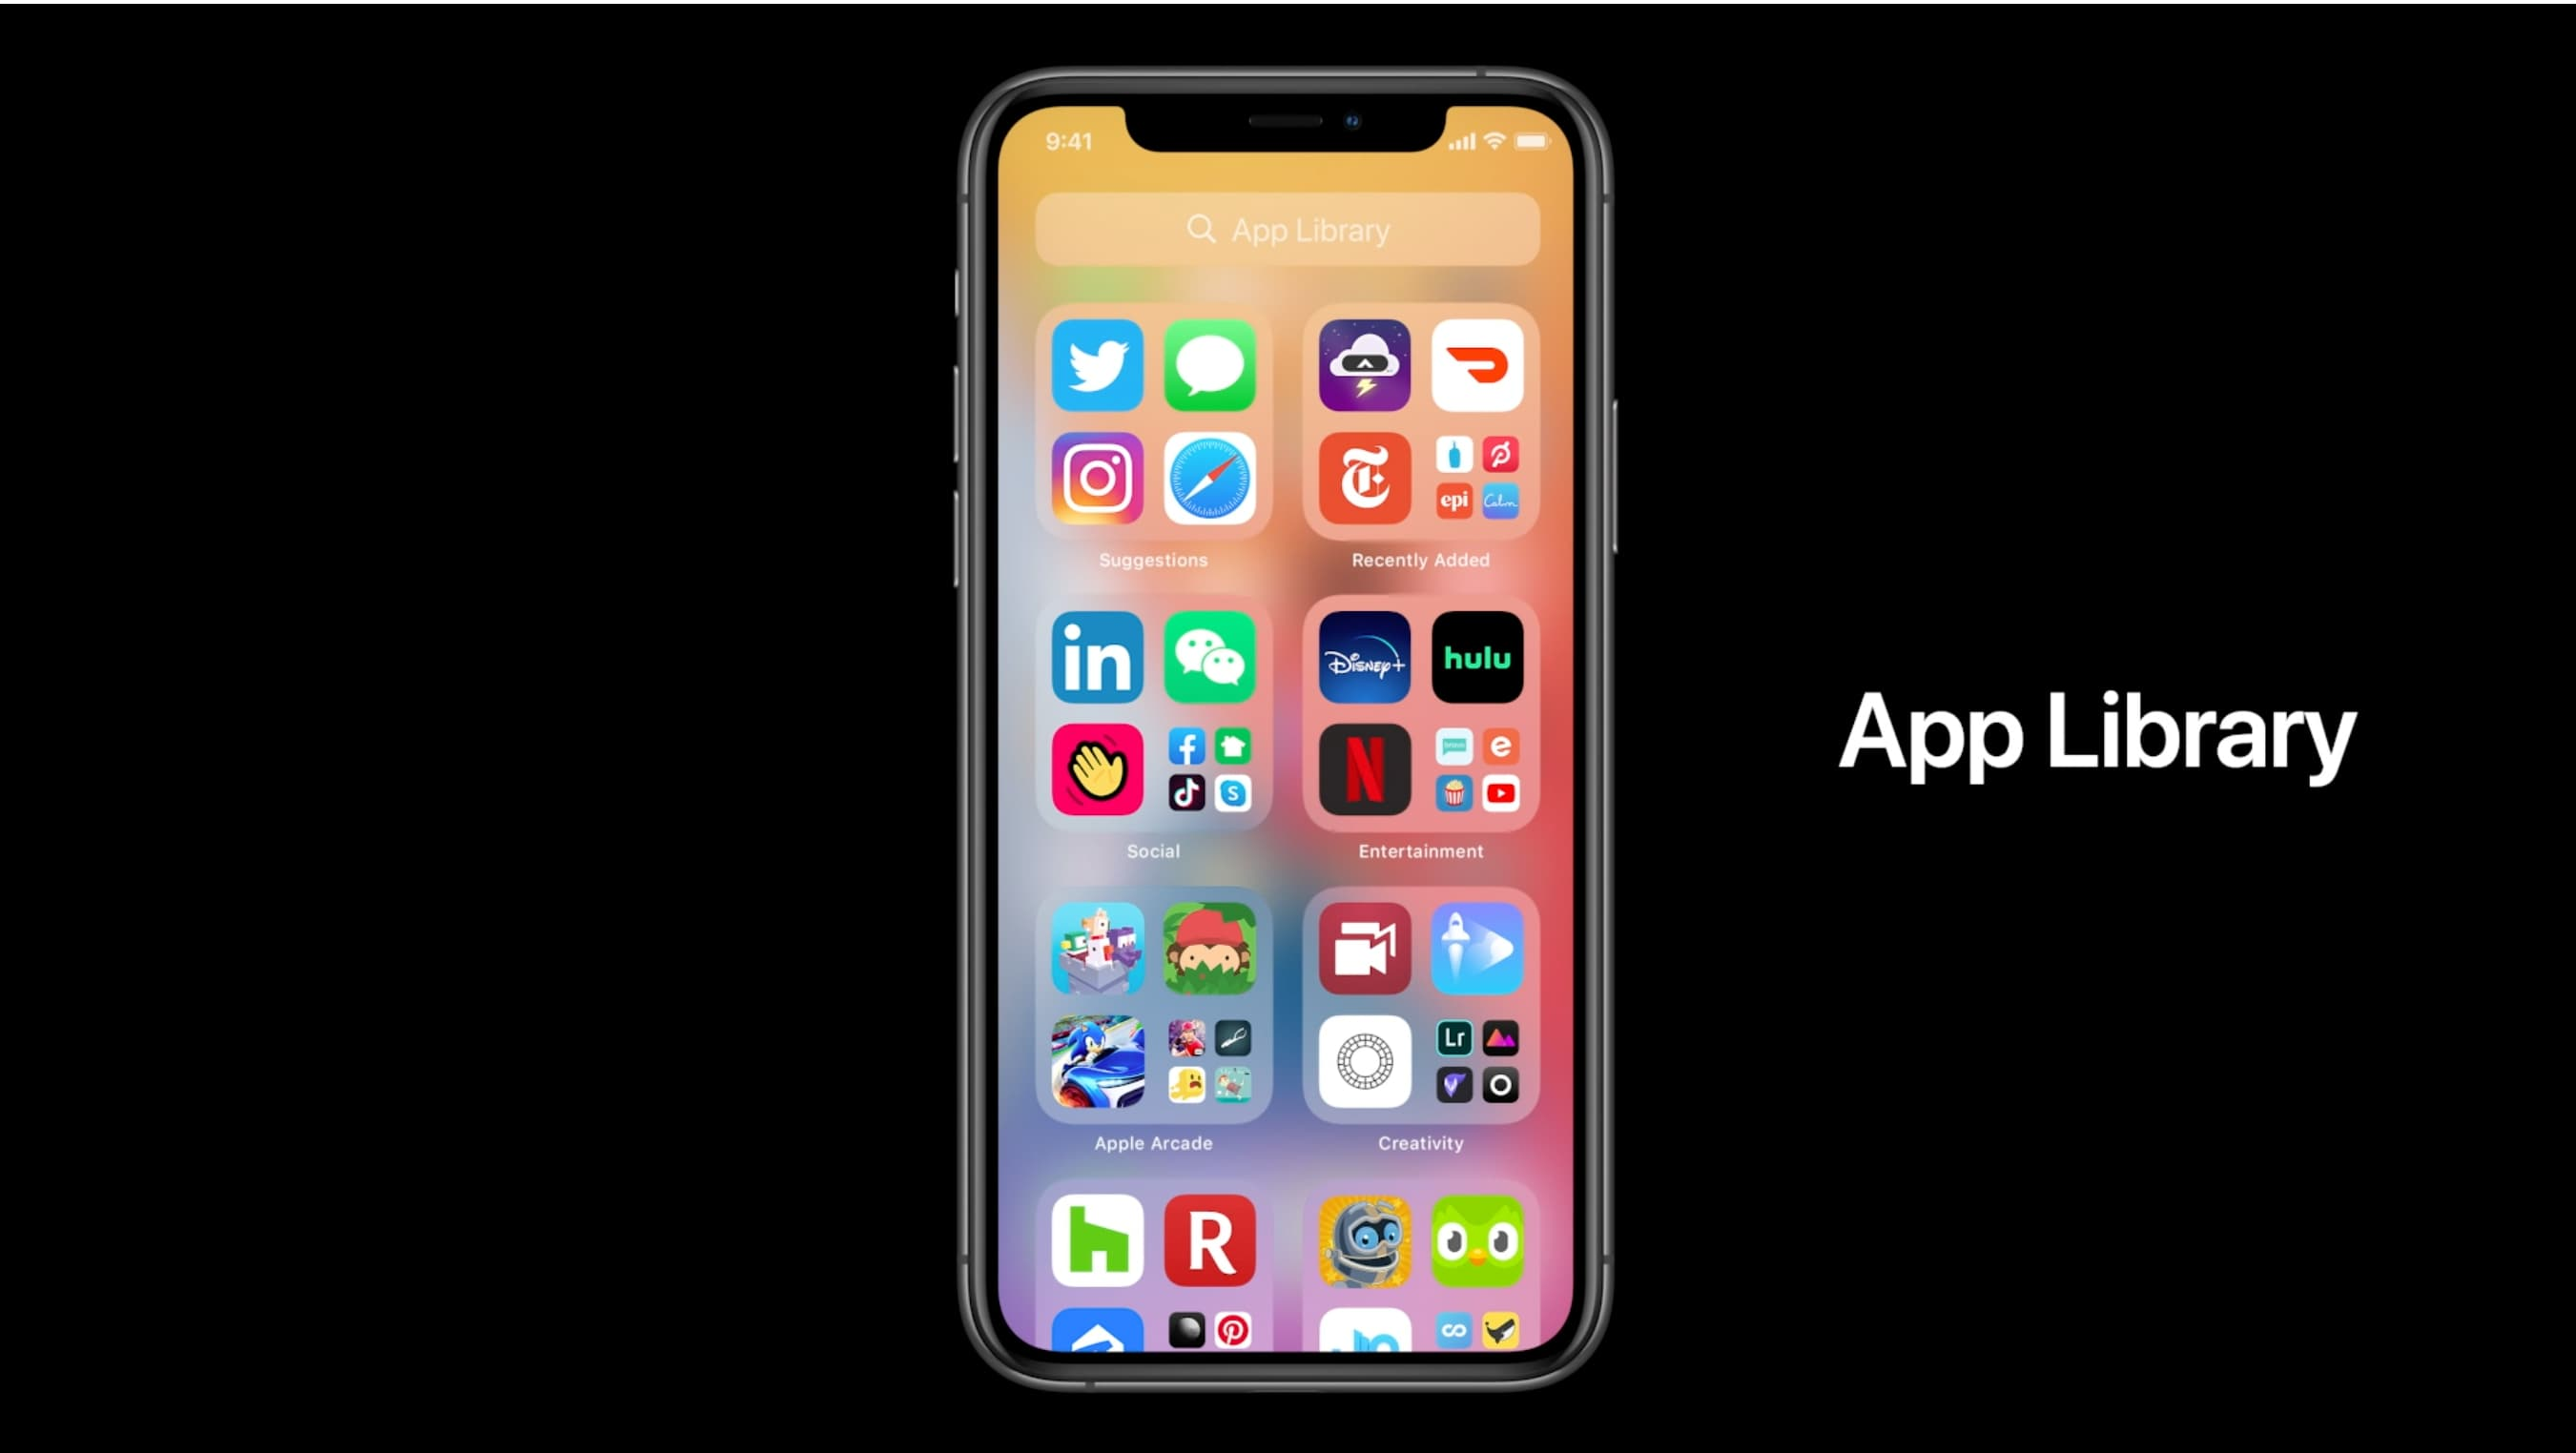 iPhone app downloads - App Library WWDC 2020 introductory slide